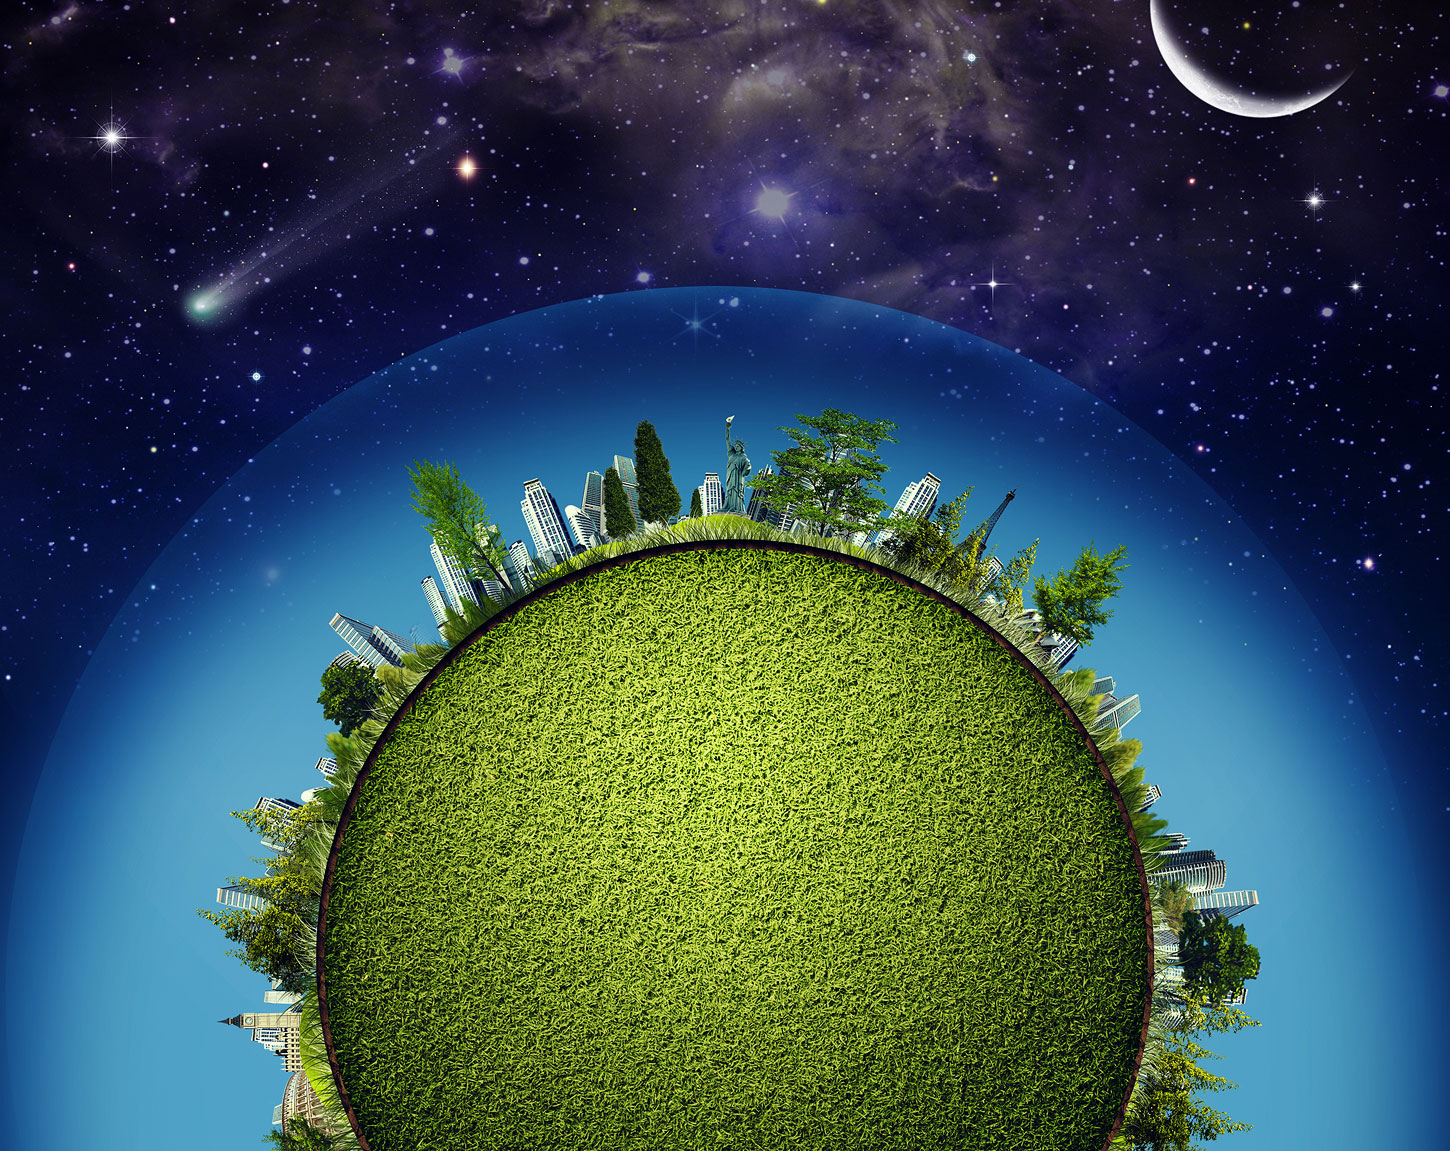 photo series project ideas - The Ecological Imagination A Conversation on Art